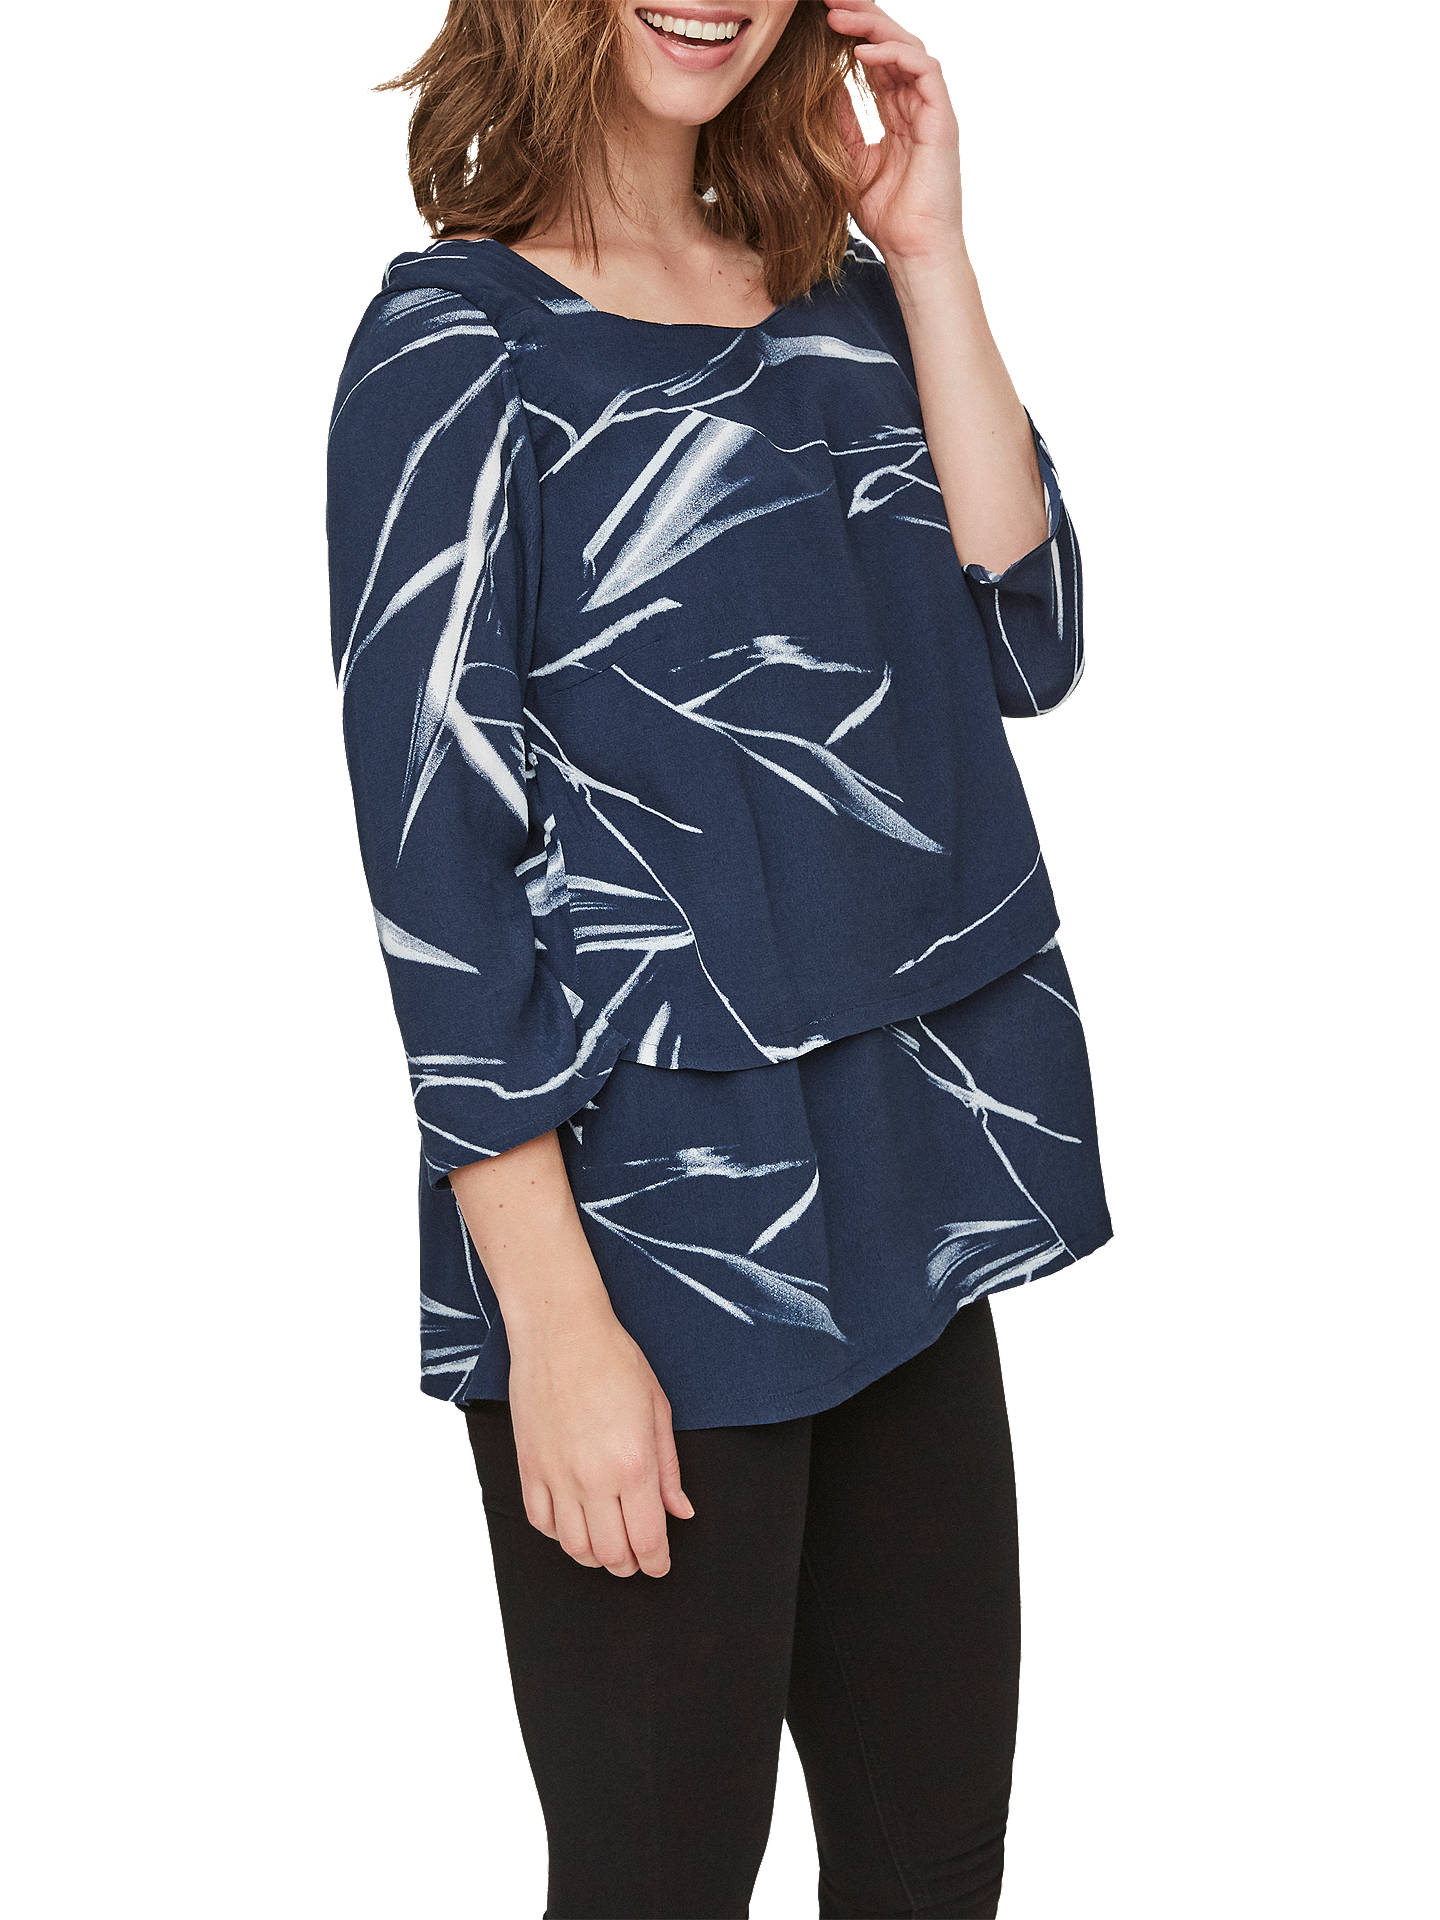 52570fb99b8b6 Buy Mamalicious Ashley Woven Maternity Nursing Top, Navy, S Online at  johnlewis.com ...